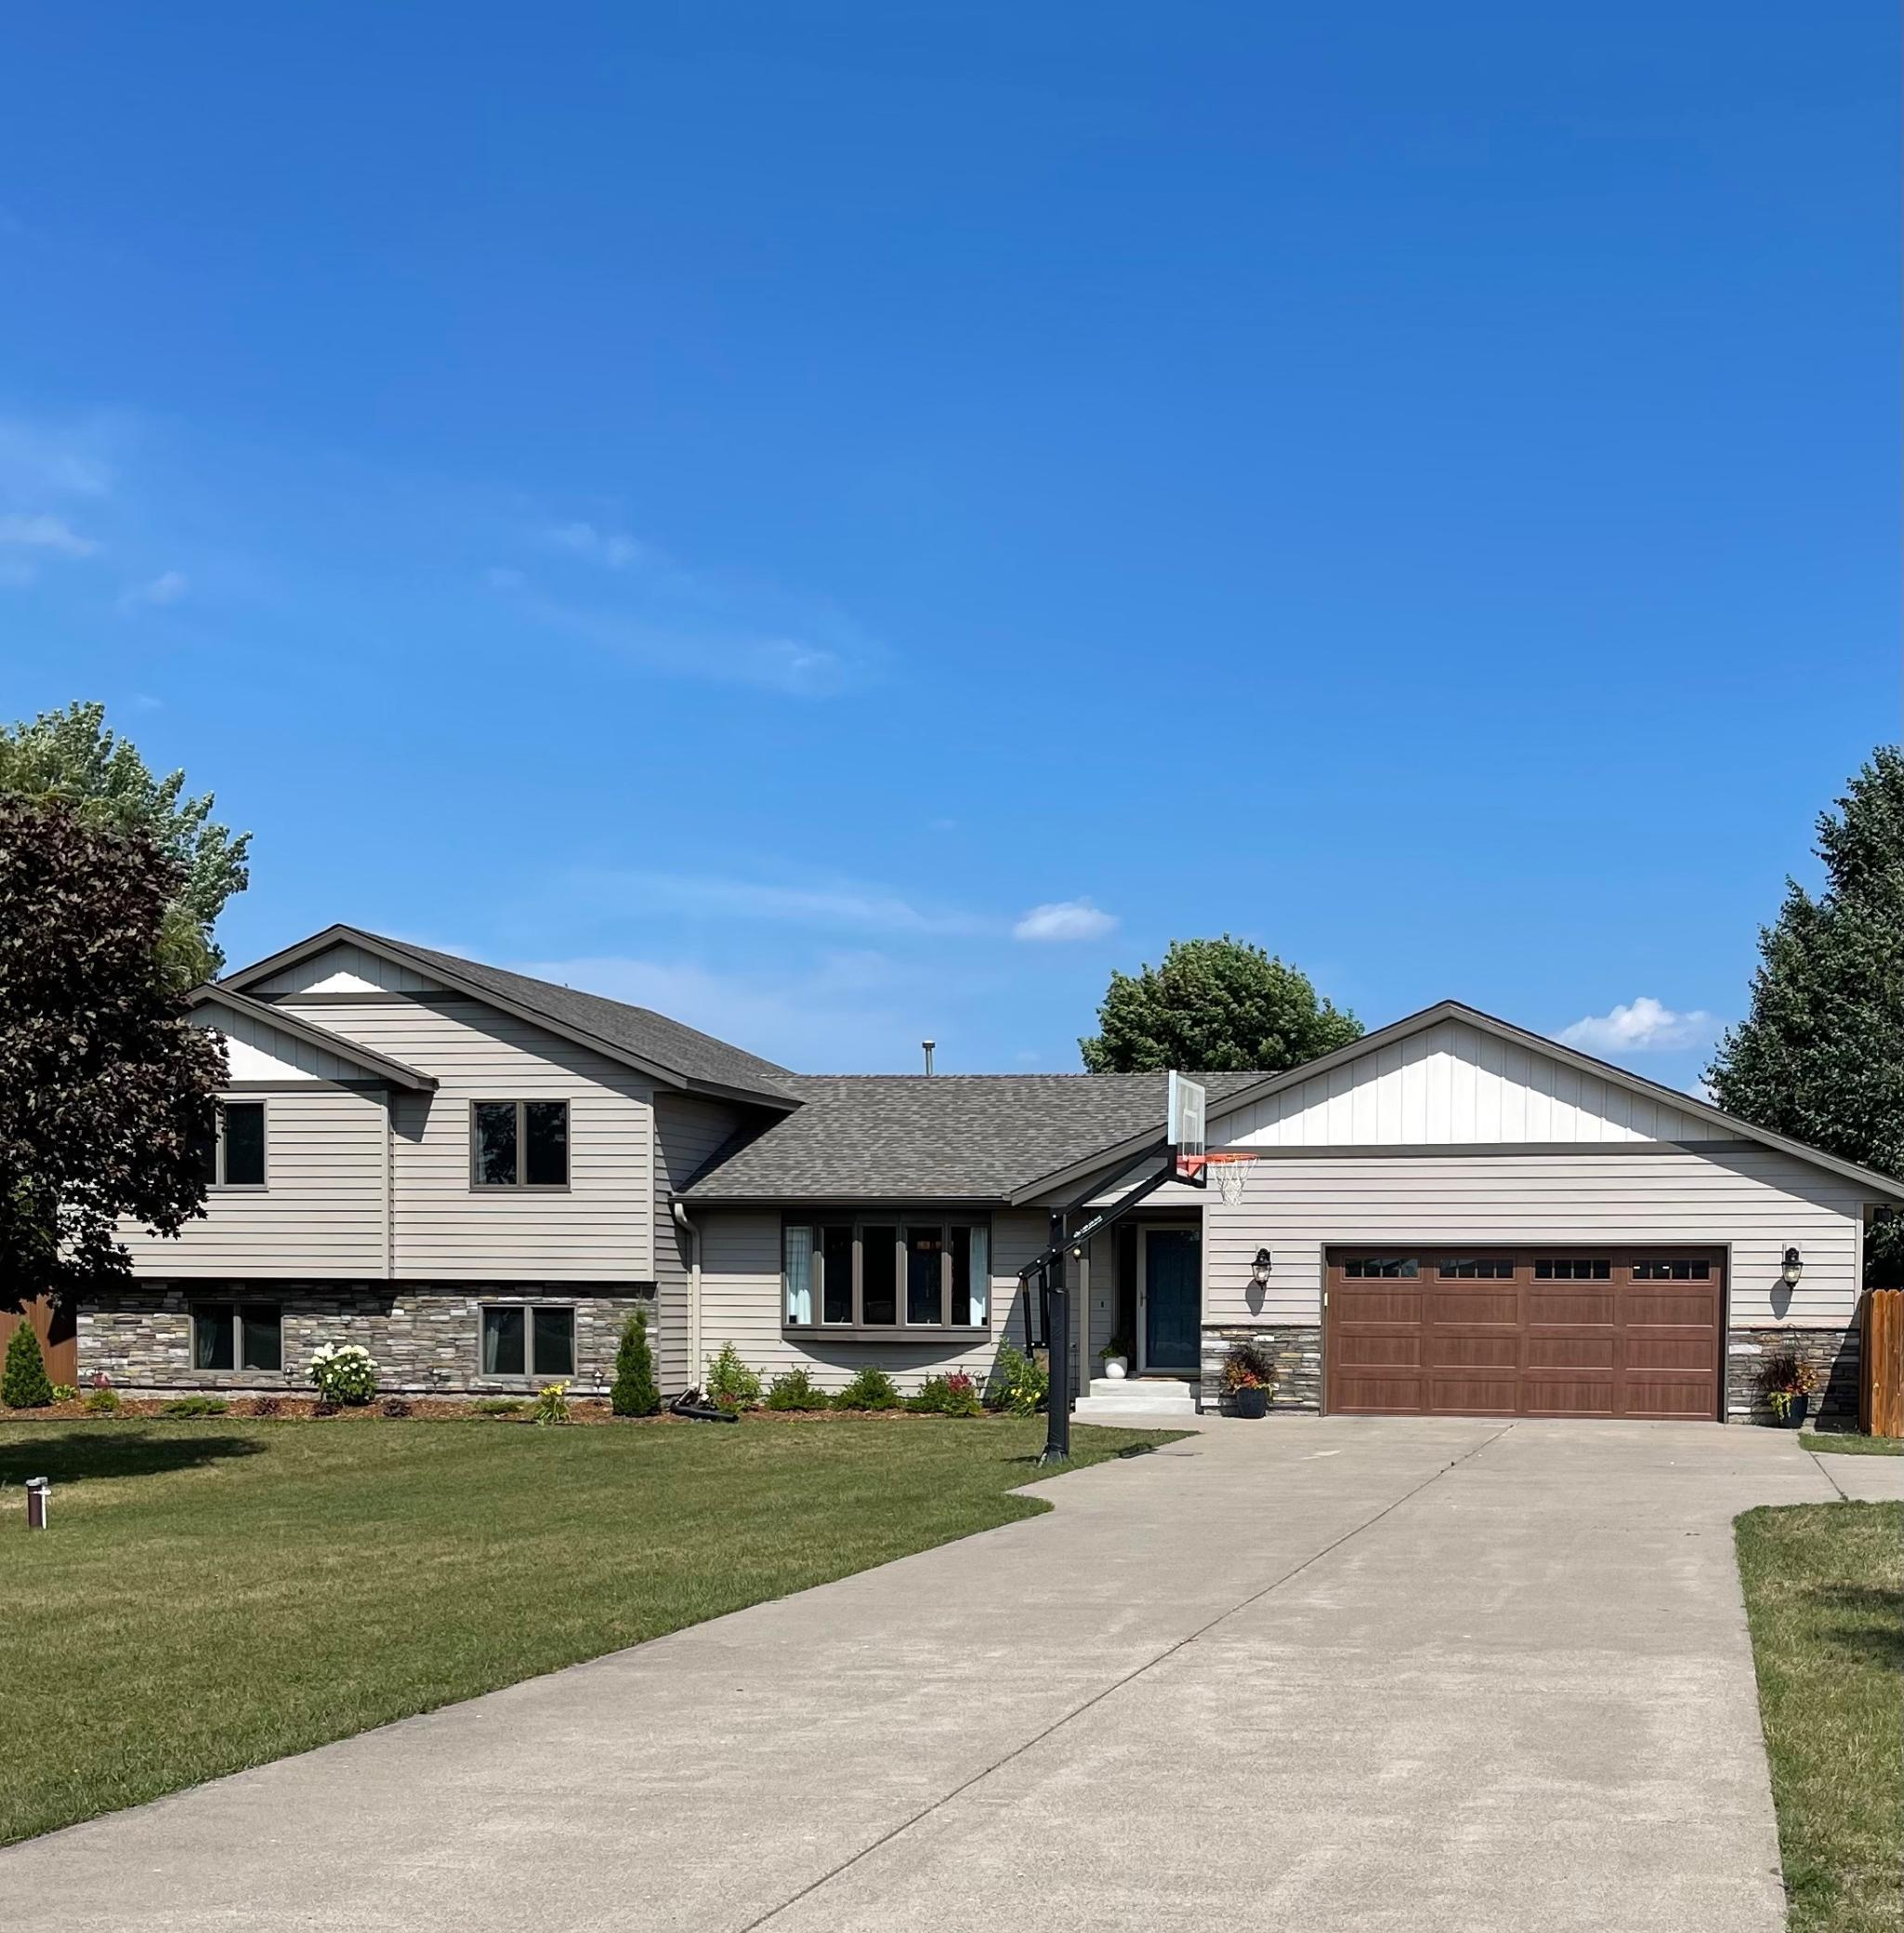 Country living close to the city with easy access to Highway 10.  This unique floor plan gives you the main floor open concept that is great for entertaining, 3 bedrooms on one level and main floor laundry.  Private back yard is completely fenced in.  Heated garage.   Many recent updates: Kitchen update in 2017,  laundry room update 2021, new tile master bath shower in 2021, new roof, siding  & deck in 2020, new furnace and air conditioning in 2020.  New landscaping in 2018.  Just to name a few.  *New Andersen patio sliding door in lower level and back service door in garage being installed beginning of August. *Please see full list of updates in supplements *Please see list in supplements of personal items not staying in home.